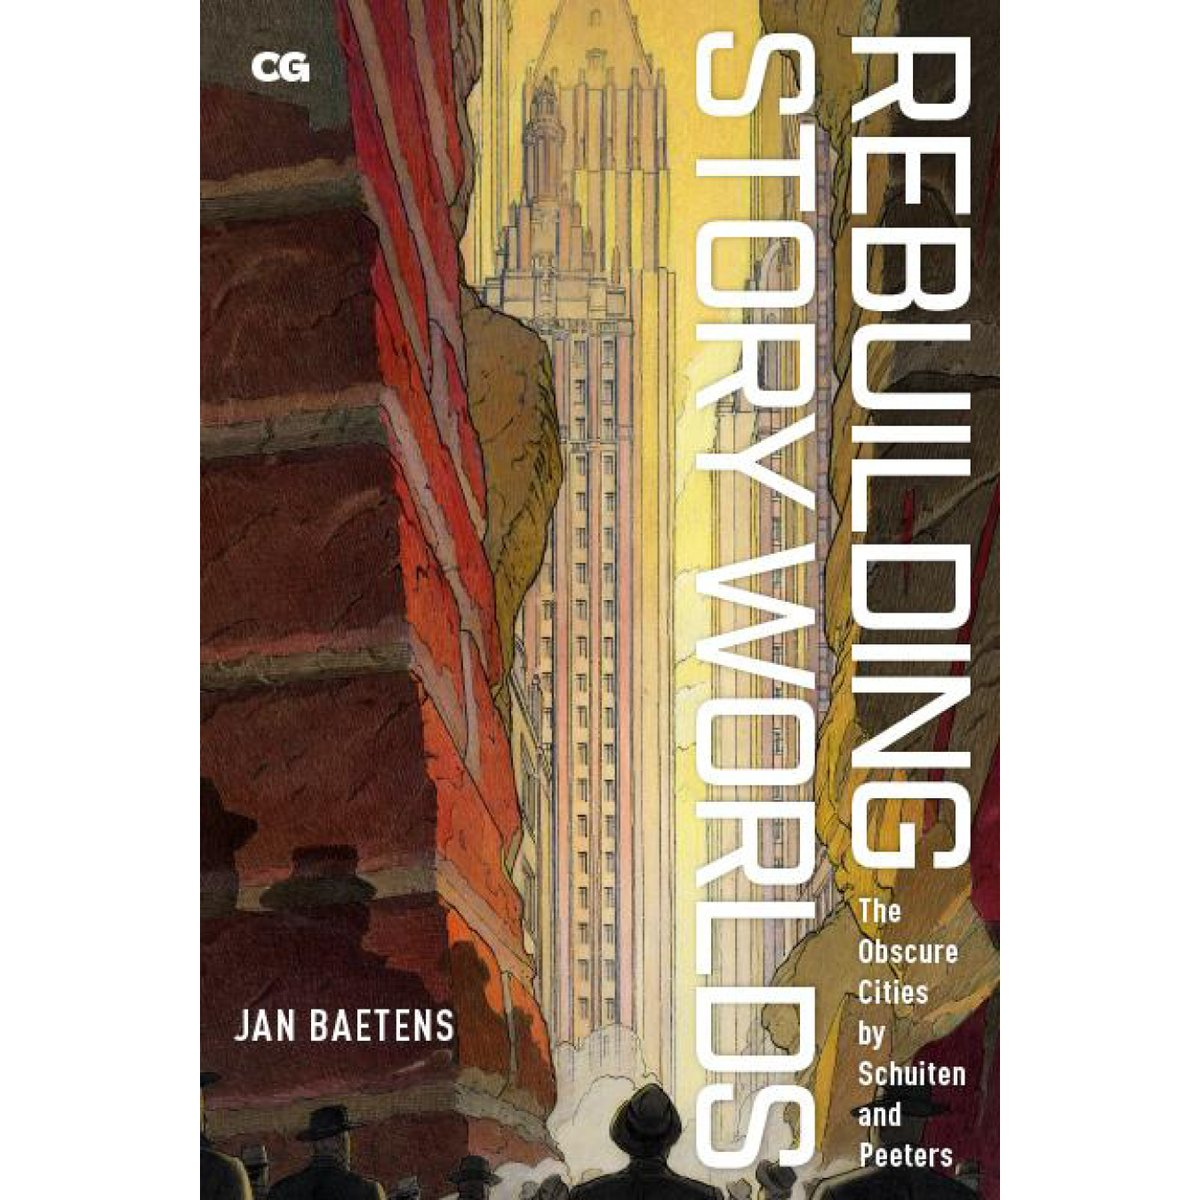 Out Now! Rebuilding Story Worlds: The Obscure Cities by Schuiten and Peeters by Jan Baetens #TheObscureCities #Comics #Architecture Get it here: https://t.co/BlsZACRXs3 https://t.co/nE52HgwG3Q